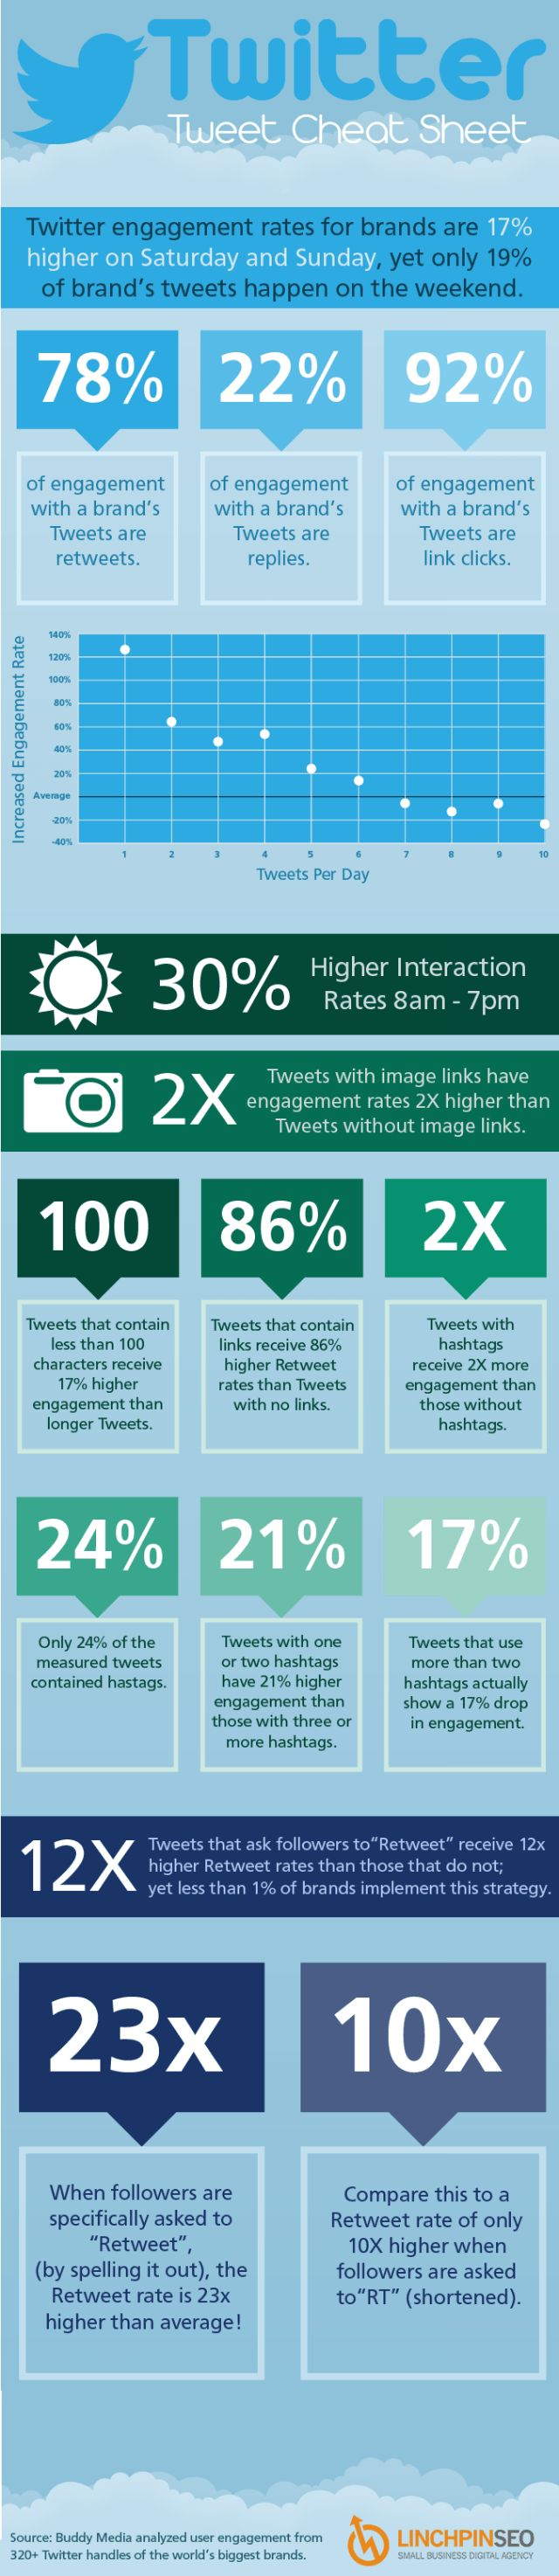 #twitter #marketing #socialmedia #marketingstrategy #infographic #southcoastsocial